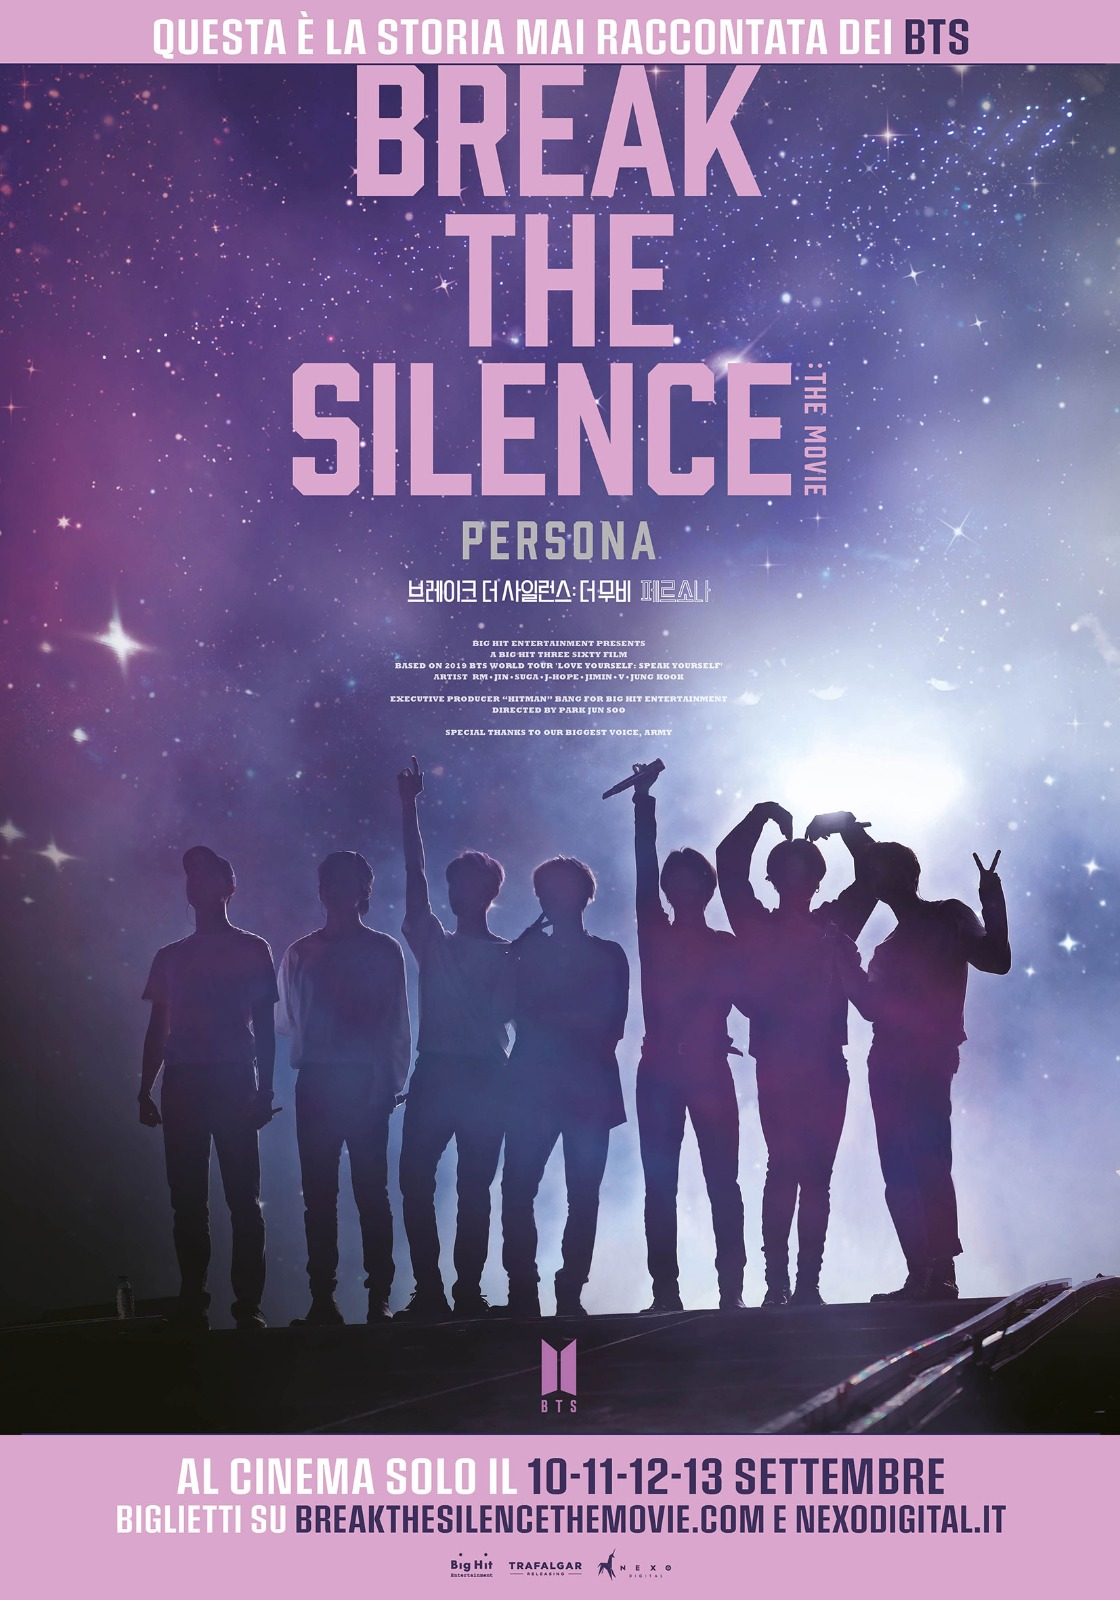 Il nuovo film dei BTS al cinema: BREAK THE SILENCE: THE MOVIE